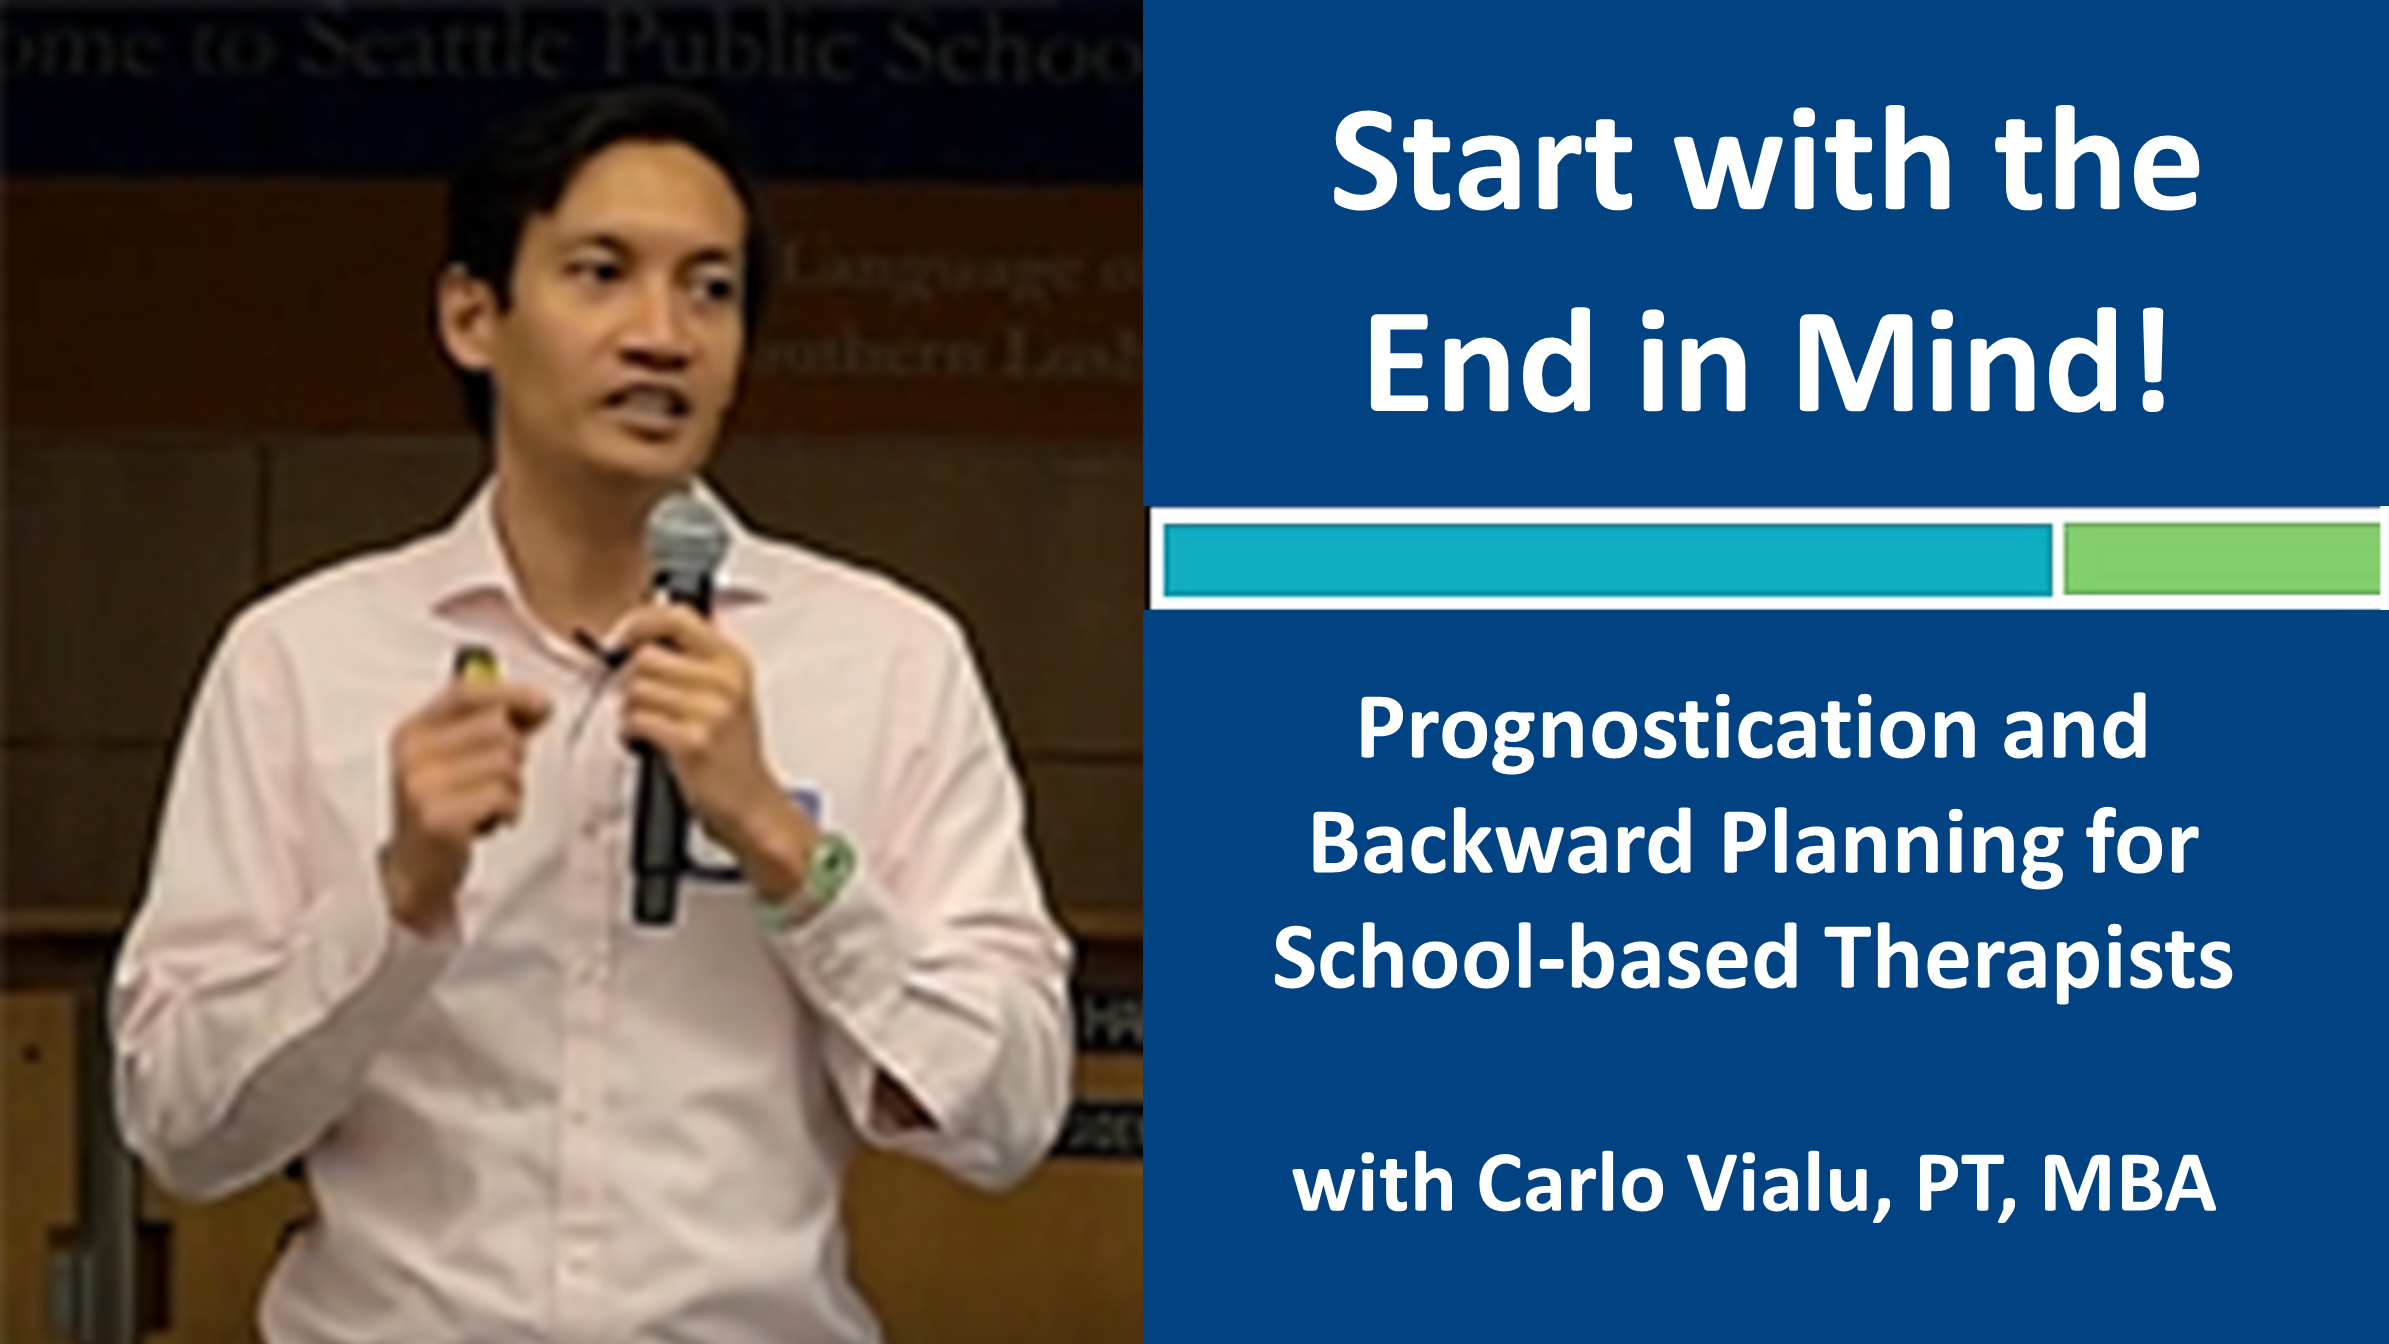 Webinar 1: Start with the End in Mind! with Carlo Vialu, PT, MBA